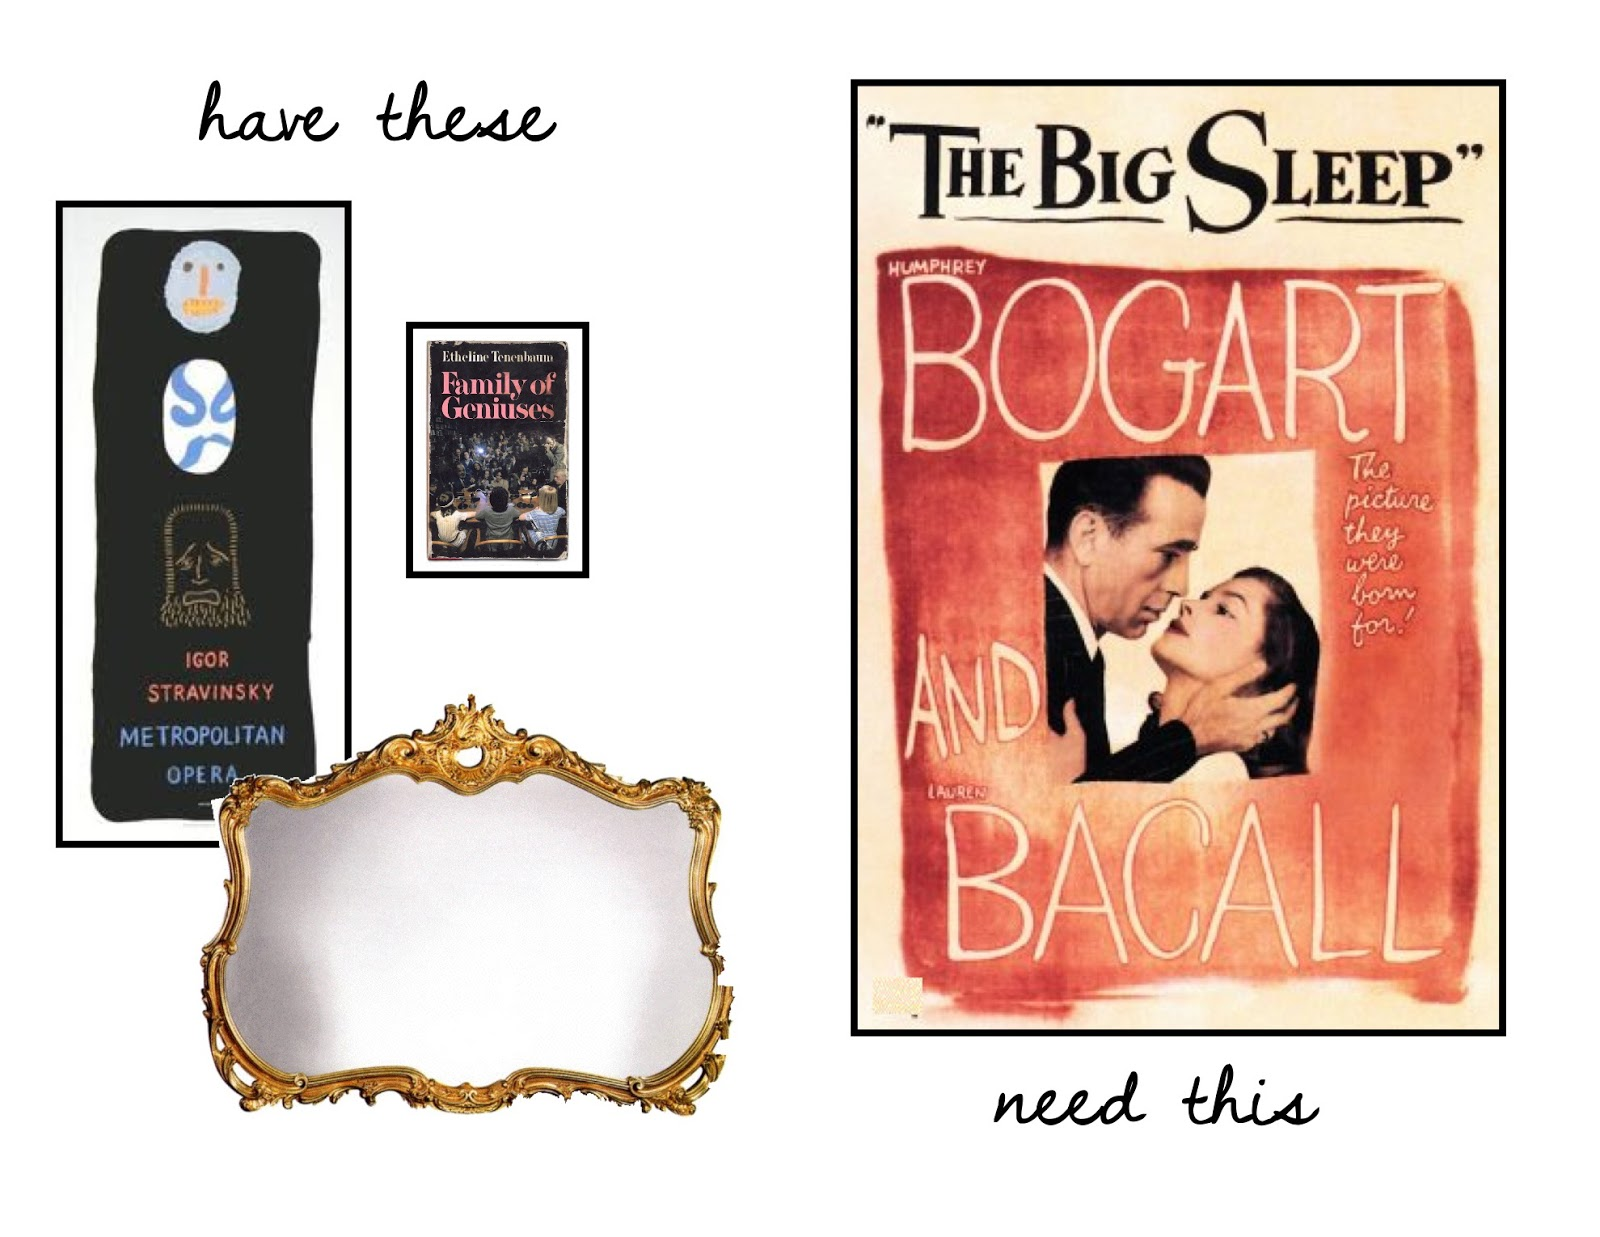 The Big Sleep & Stravinsky posters, antique gold mirror